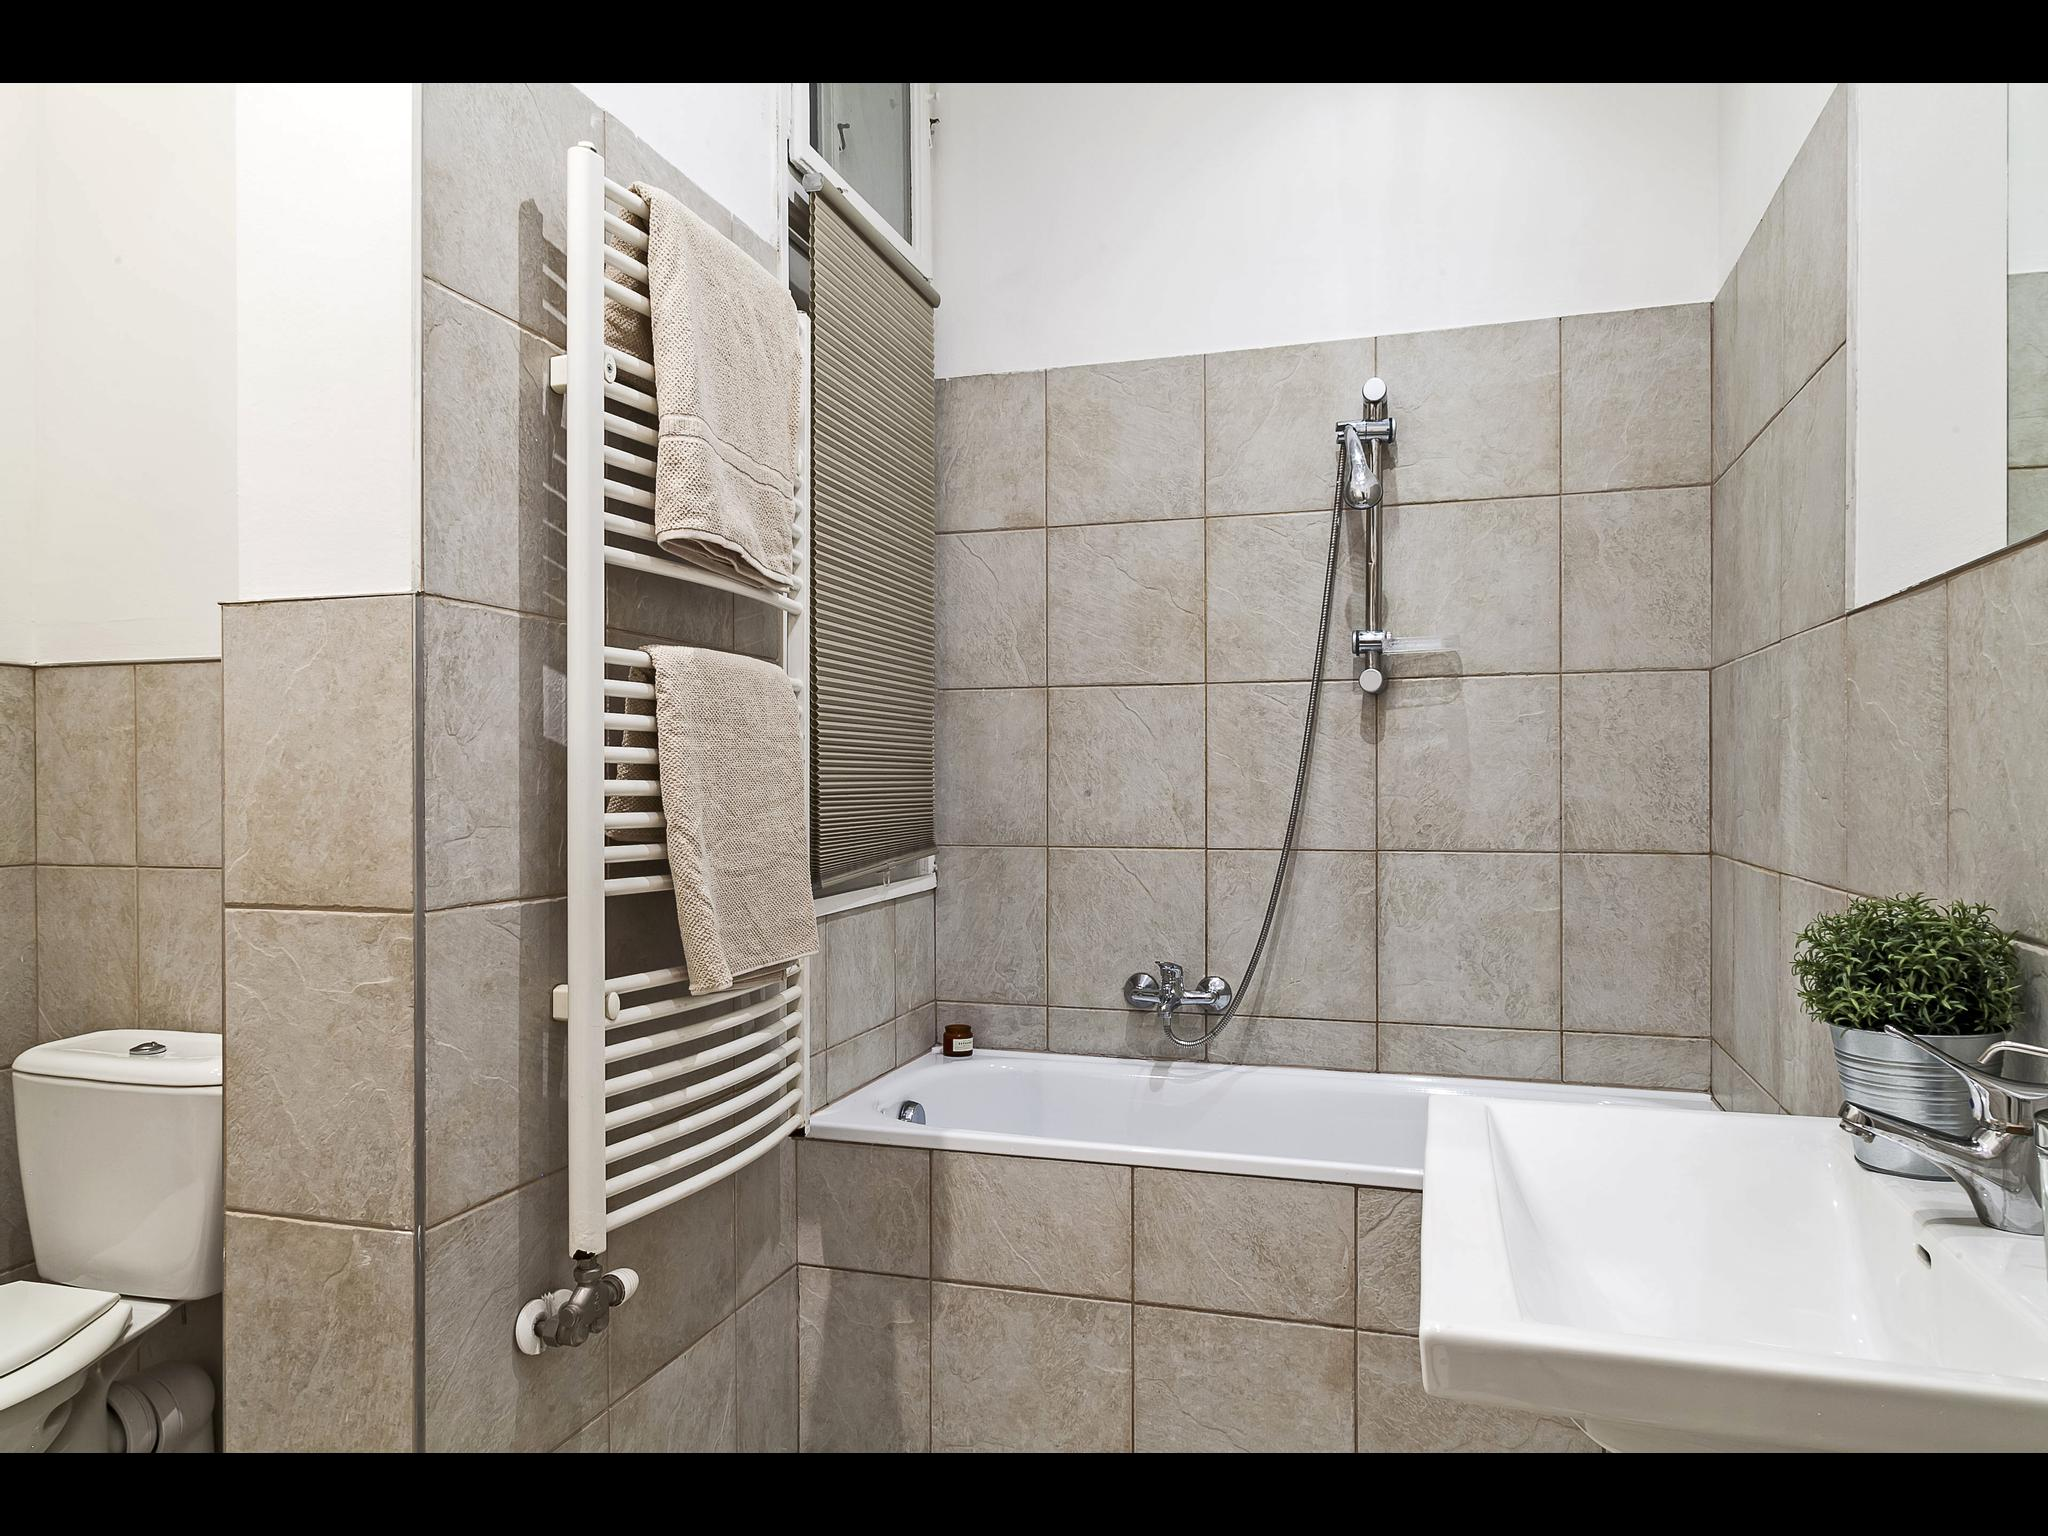 Nagymez 3 - Bedroom for rent in Budapest